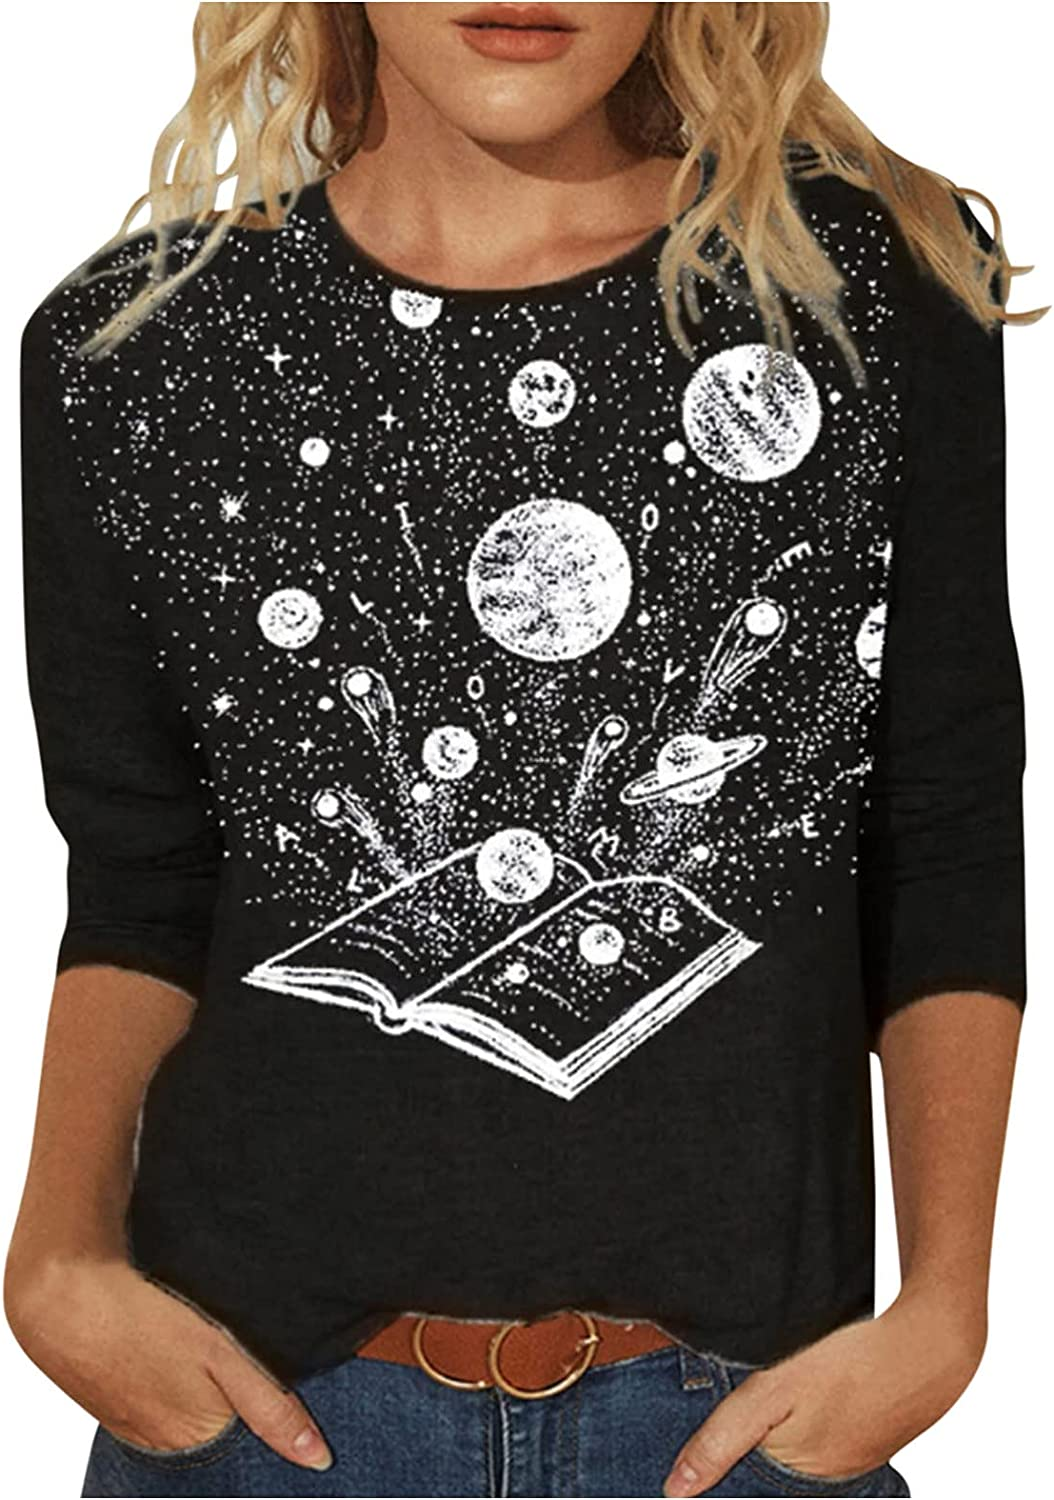 JSPOYOU Womens Long Sleeve T-Shirt Plus Size 3D Print Cute Funny Graphic Tees Casual Cotton Tee Tunic Tops